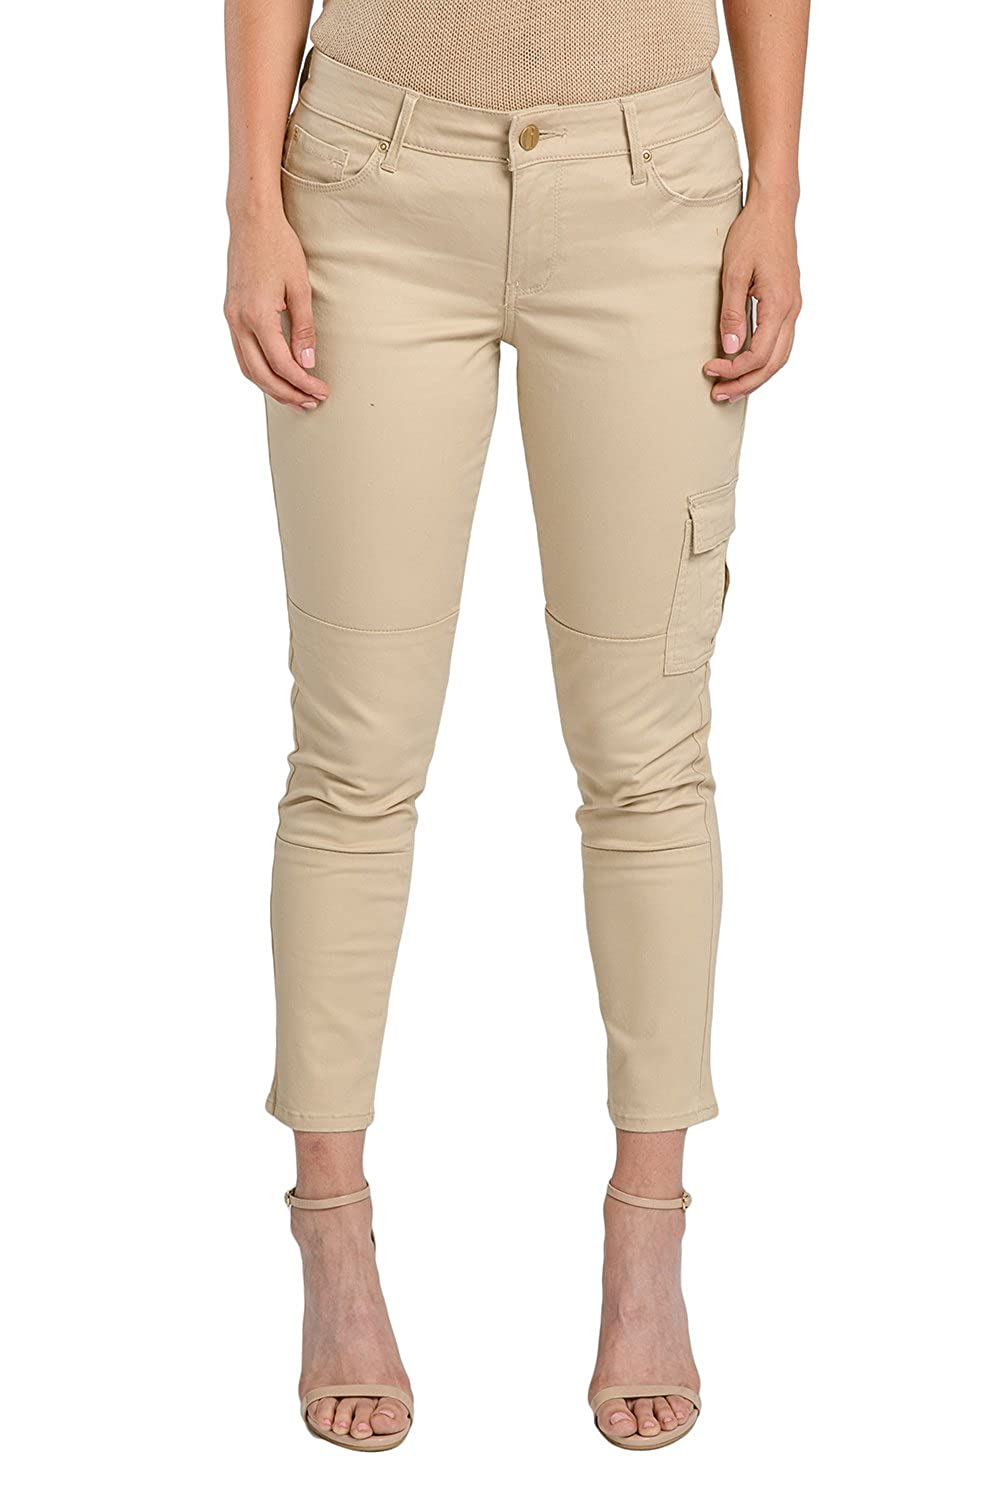 Miss Halladay Women Chino Twill Khaki 5 Pocket Skinny Cargo Pants Ankle  Length at Amazon Women s Clothing store  df803b6e2